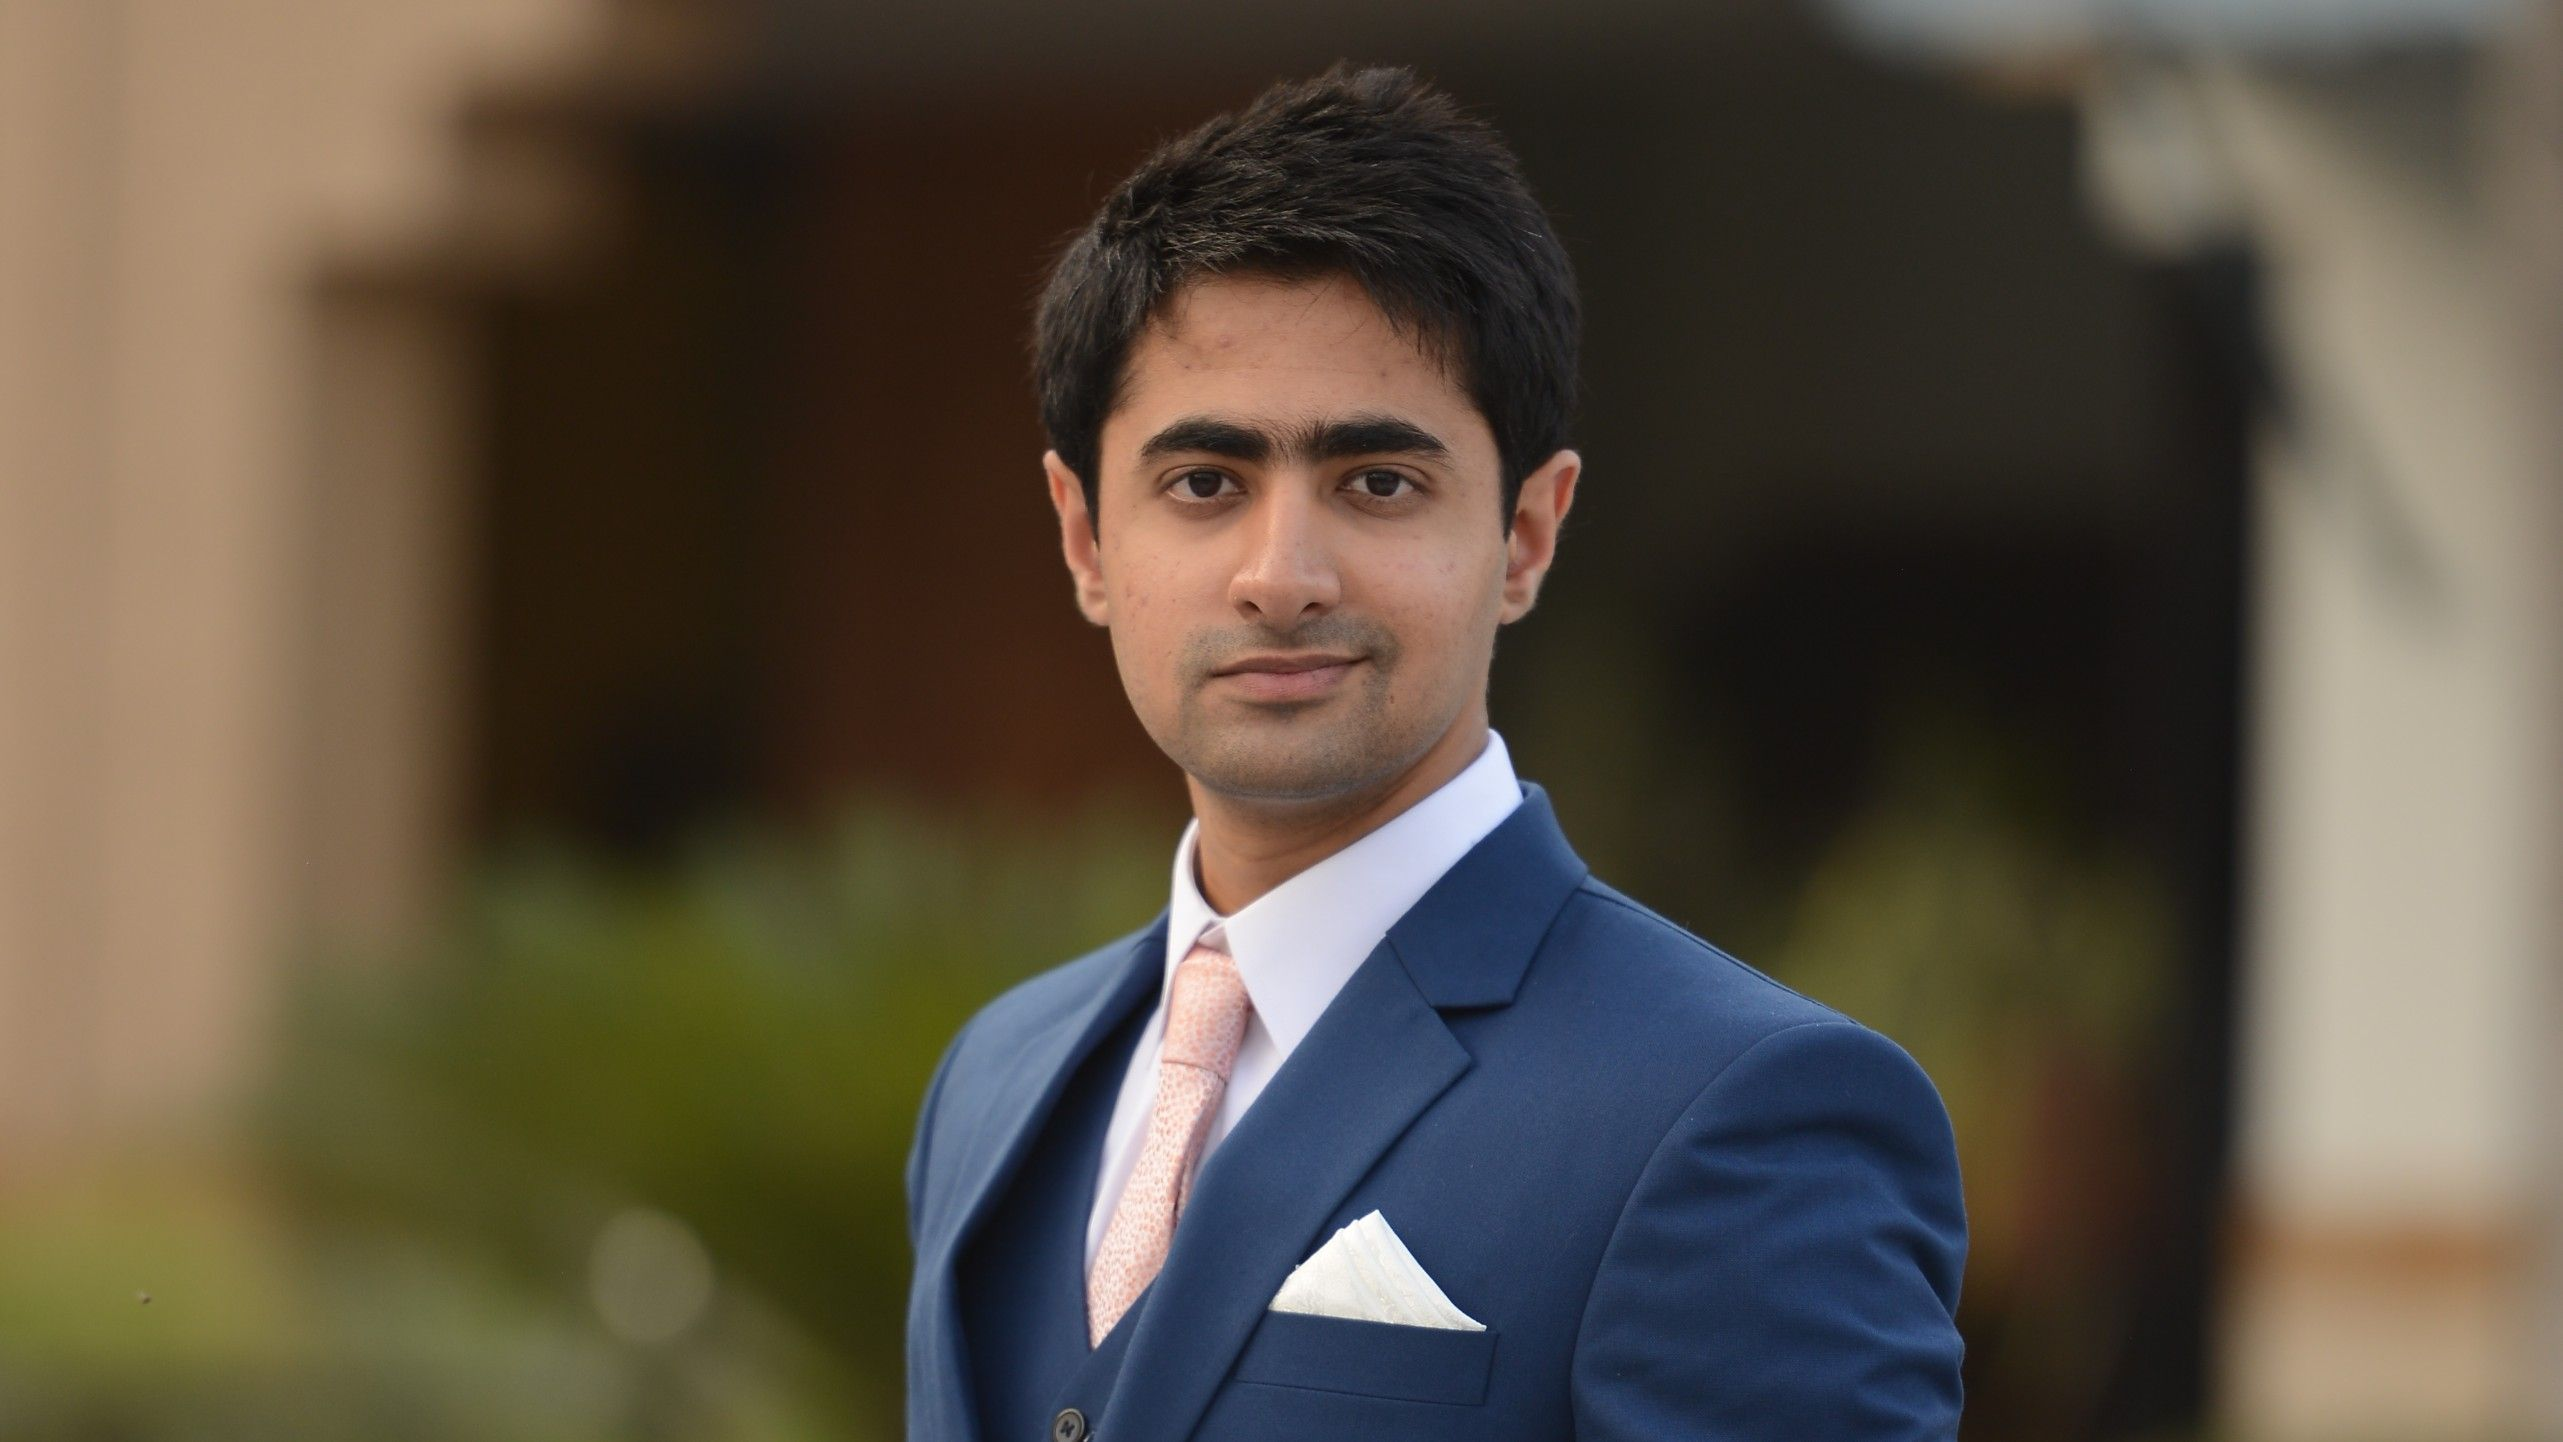 Junaid Farooq, Bachelor of Business (Accounting and Finance) alumnus and Client Services Associate - Western Asset Management